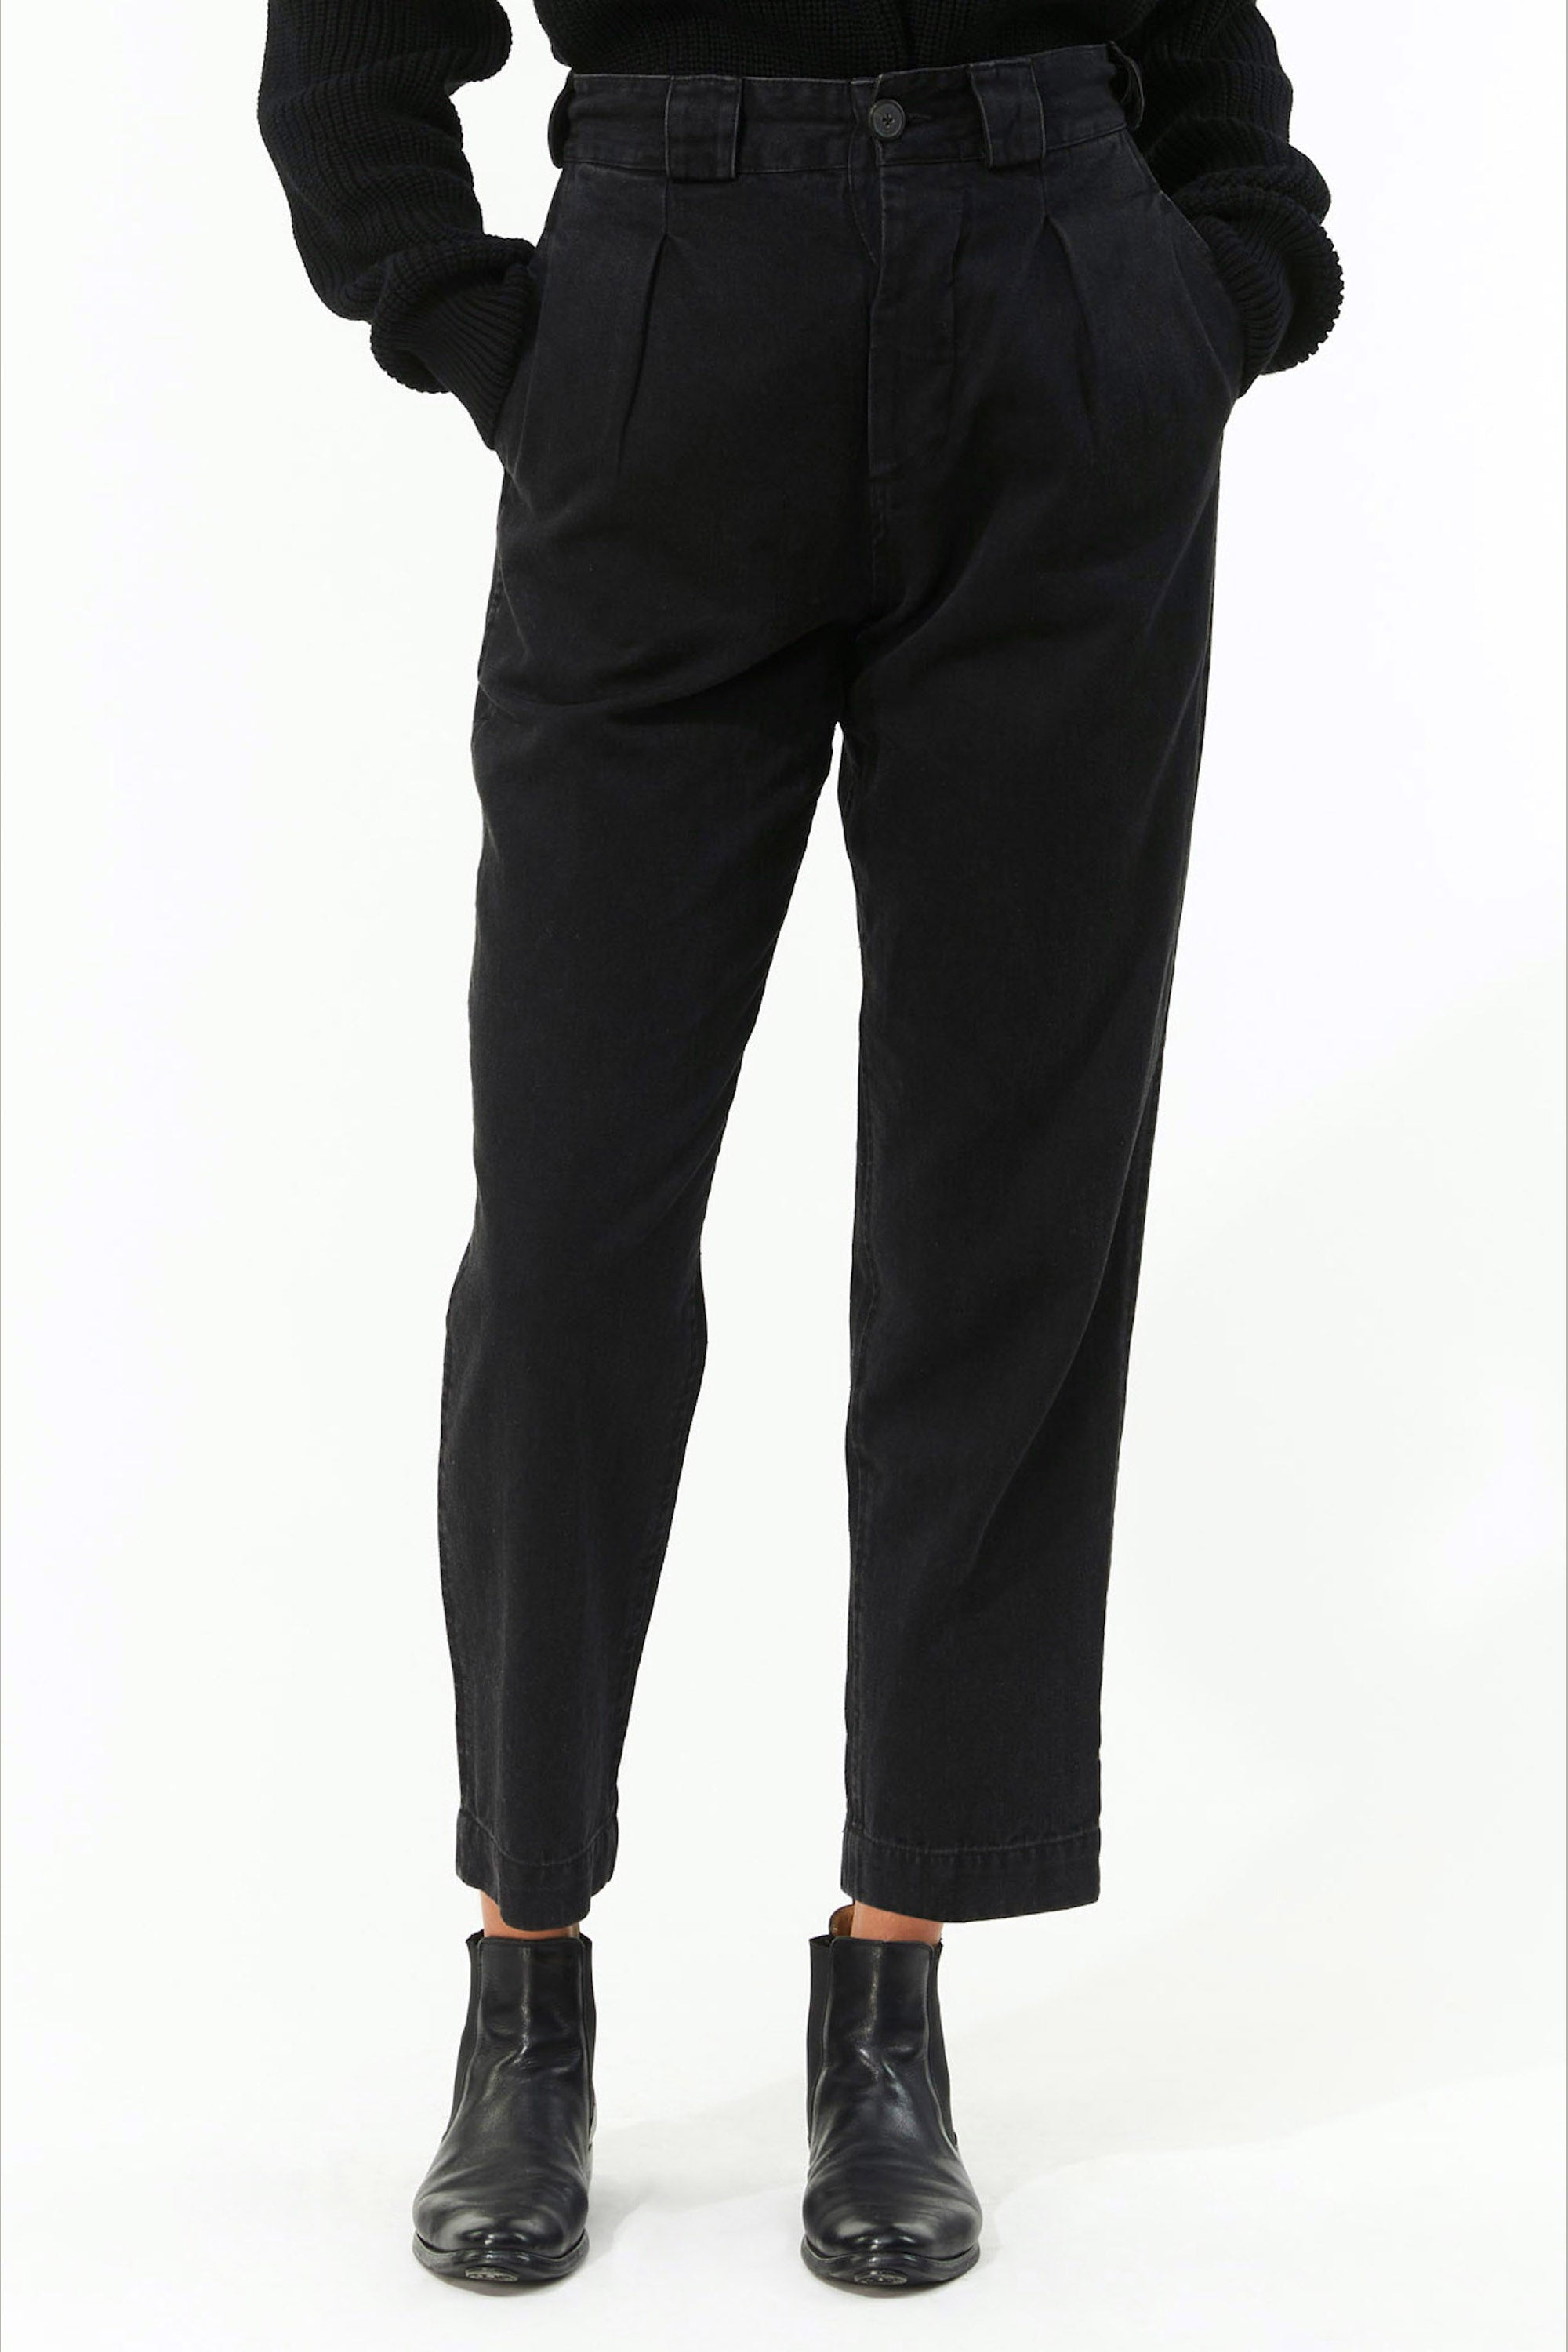 Mara Hoffman Black Jade Pant in hemp and organic cotton (front detail)